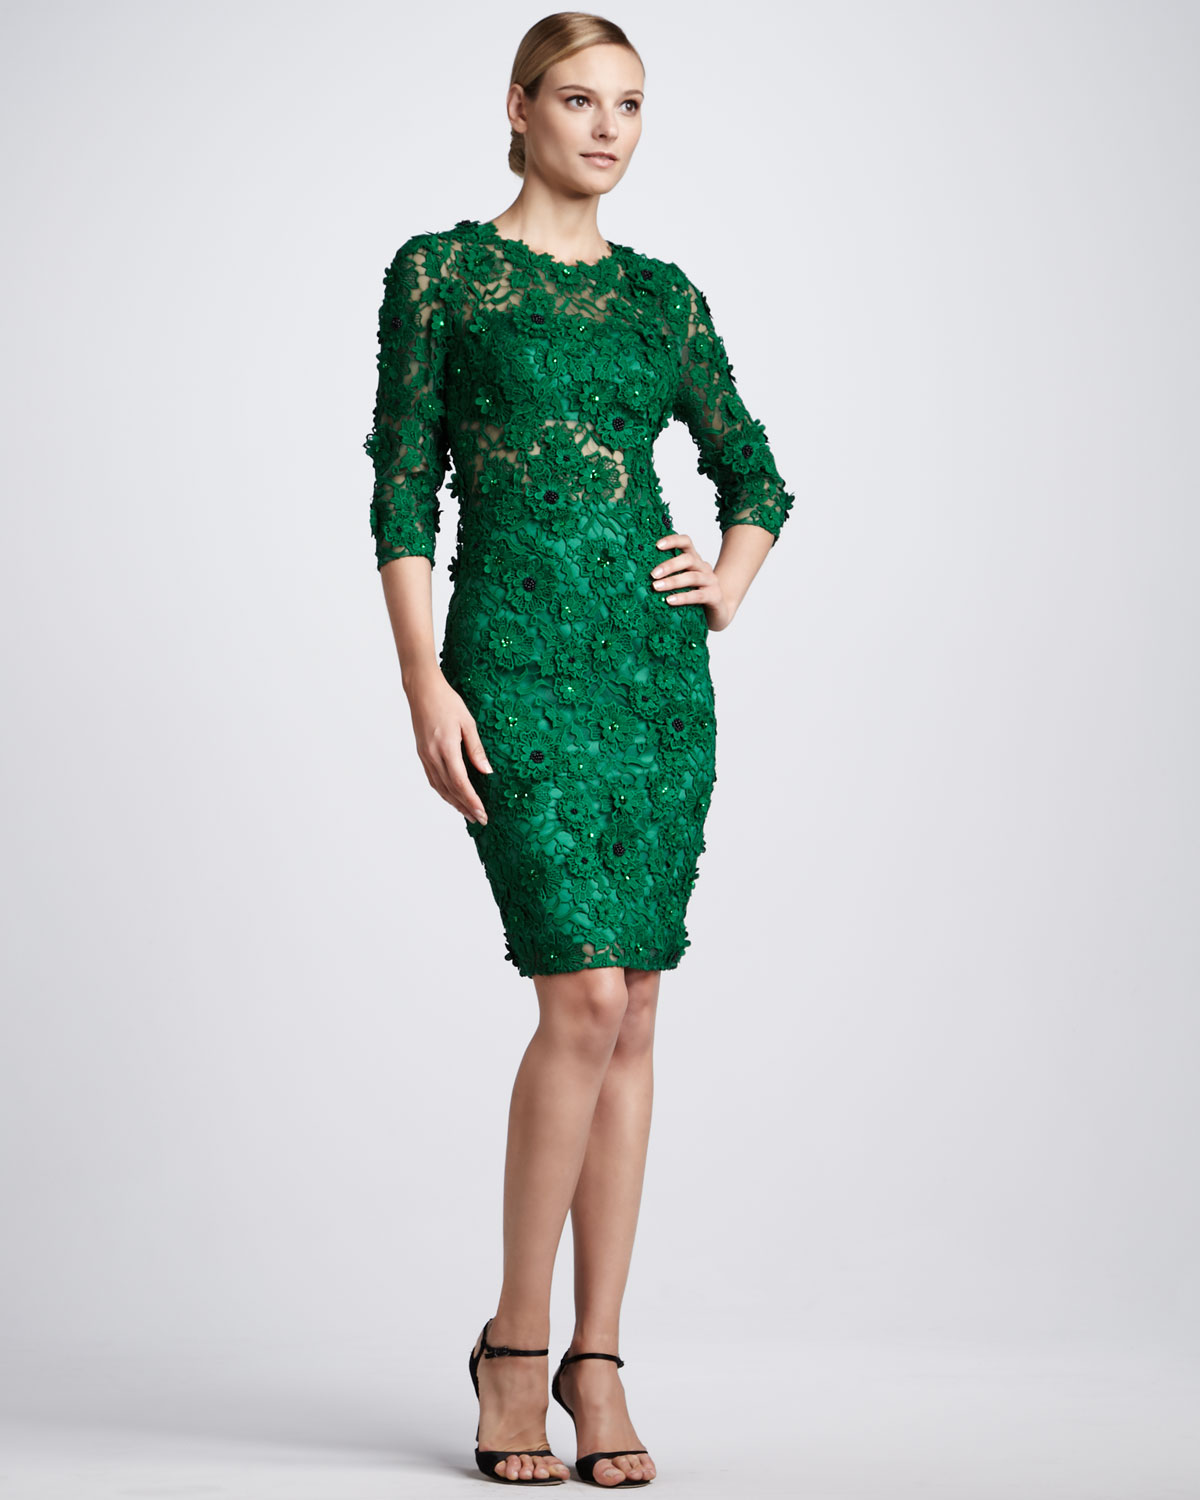 Green Lace Cocktail Dress